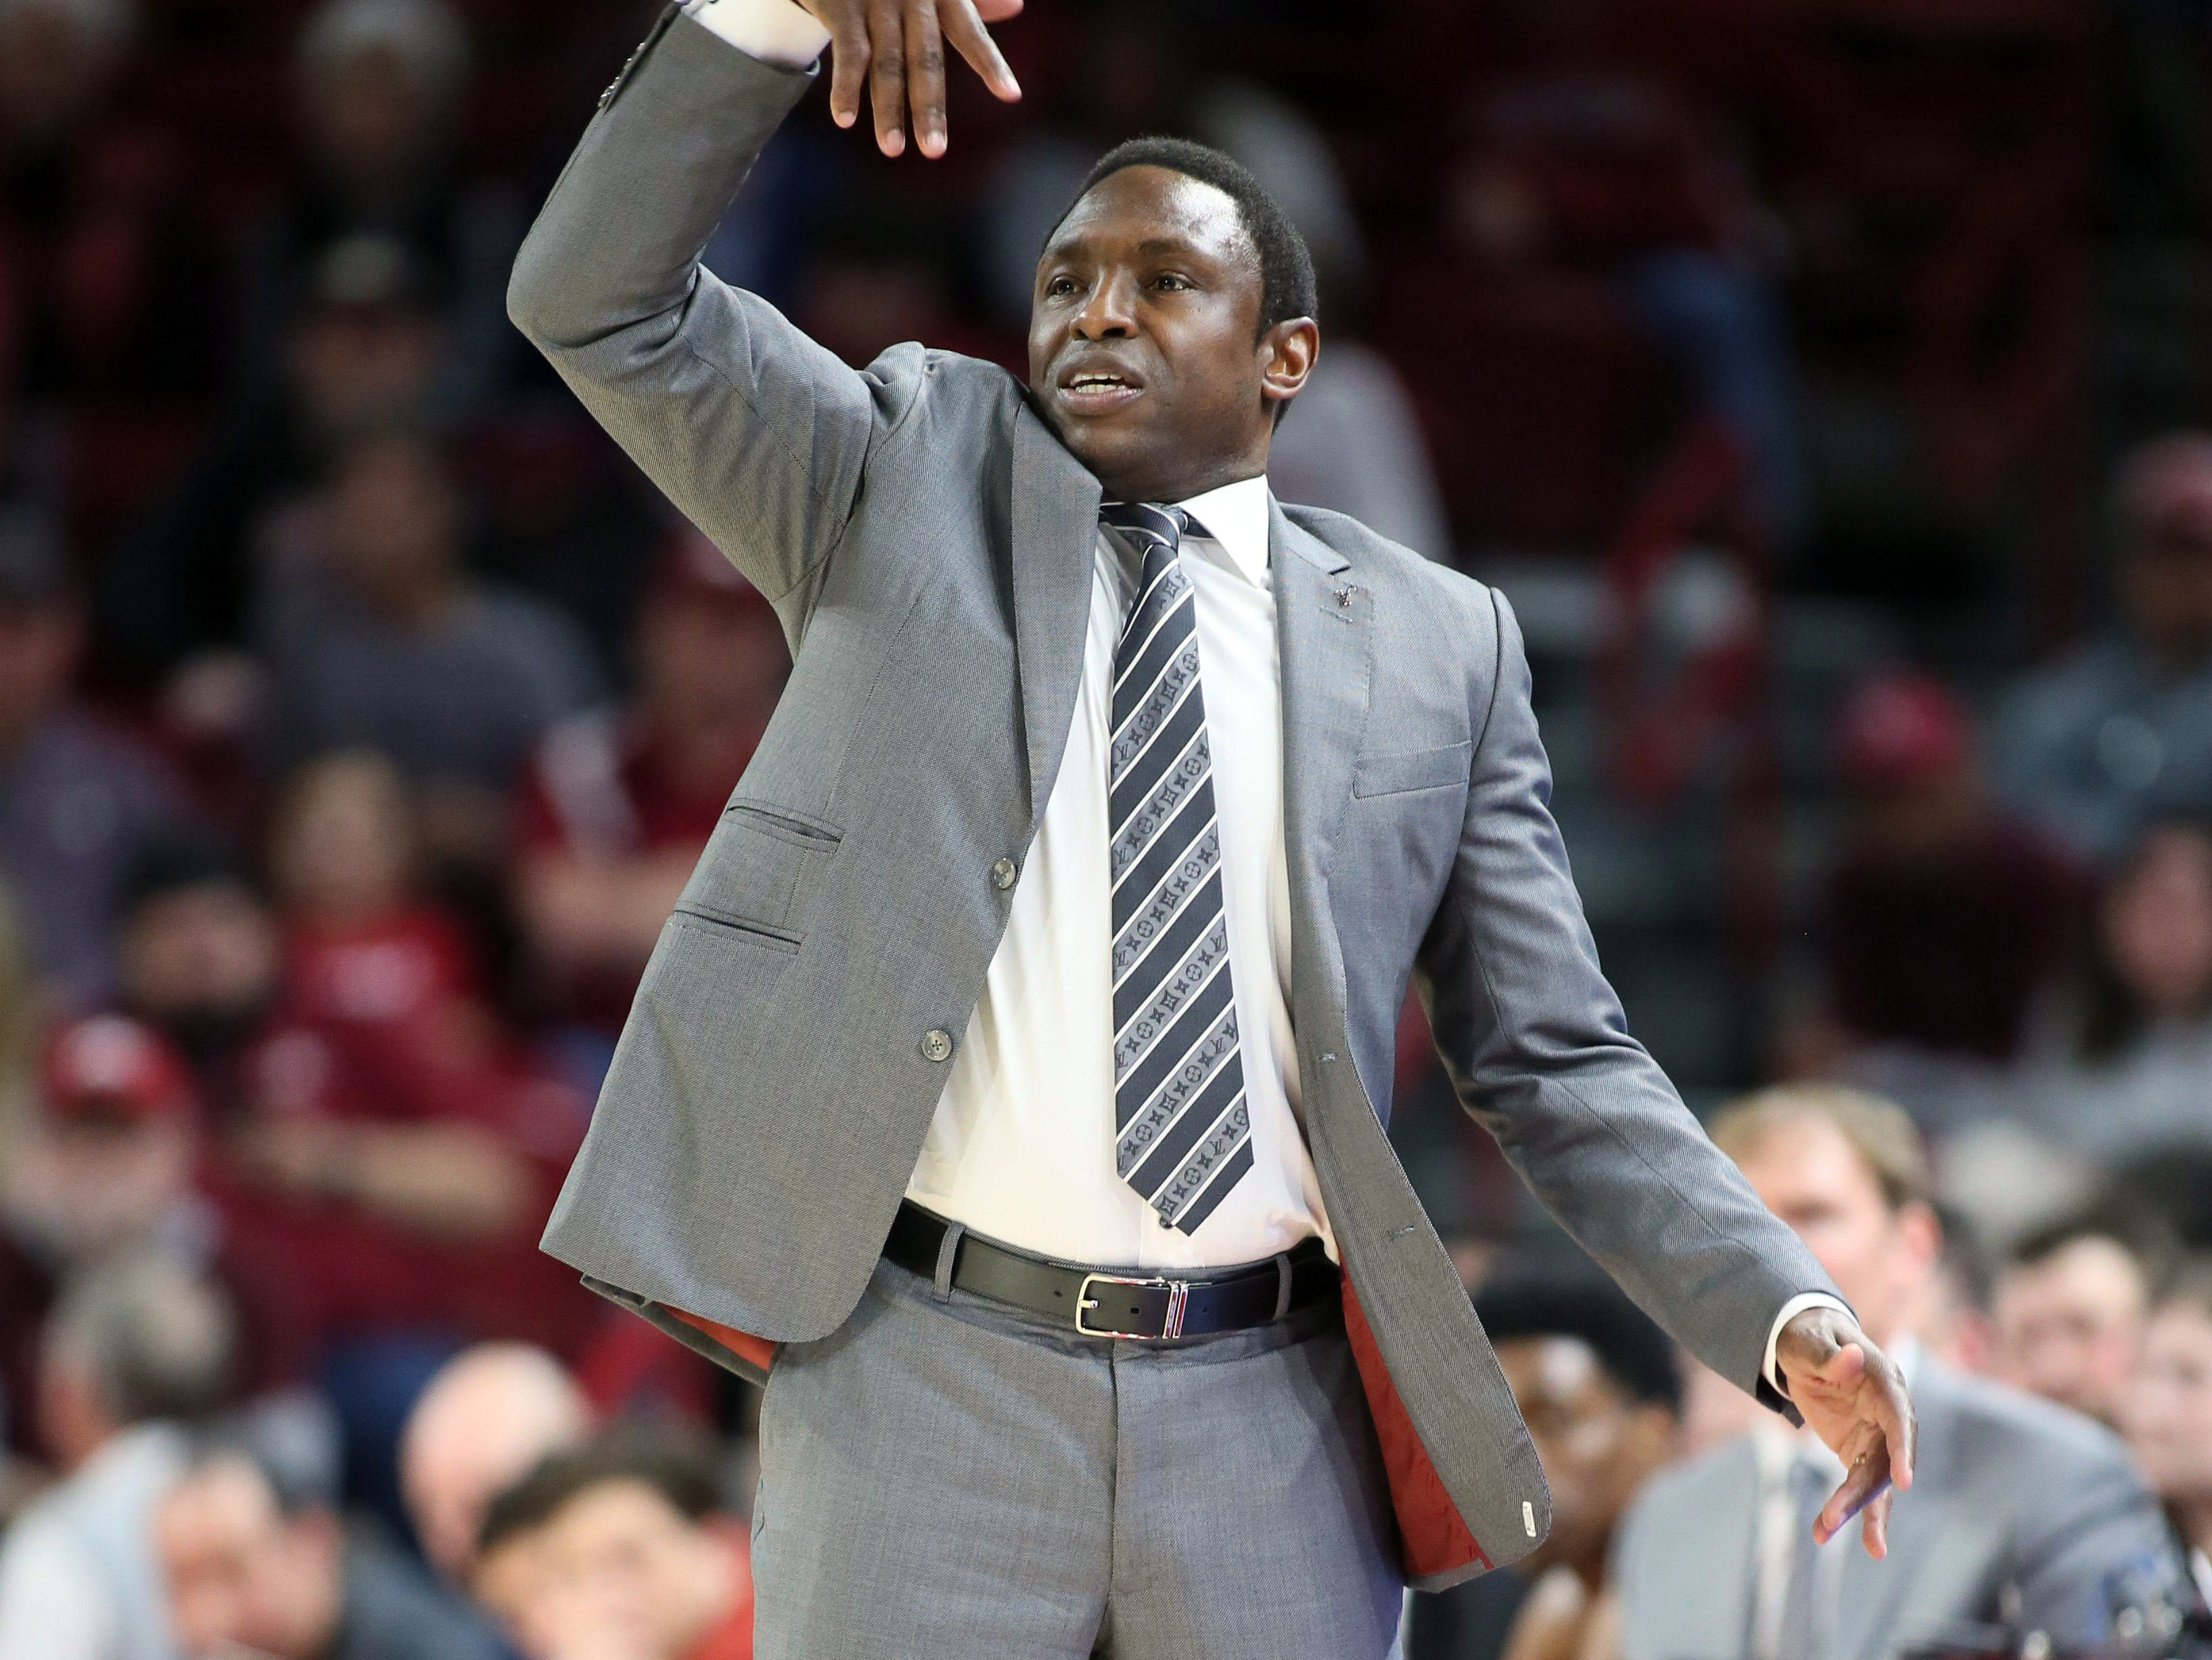 Mar 9, 2019; Fayetteville, AR, USA; Alabama Crimson Tide head coach Avery Johnson motions to his team during the first half agains the Arkansas Razorbacks at Bud Walton Arena. Mandatory Credit: Nelson Chenault-USA TODAY Sports